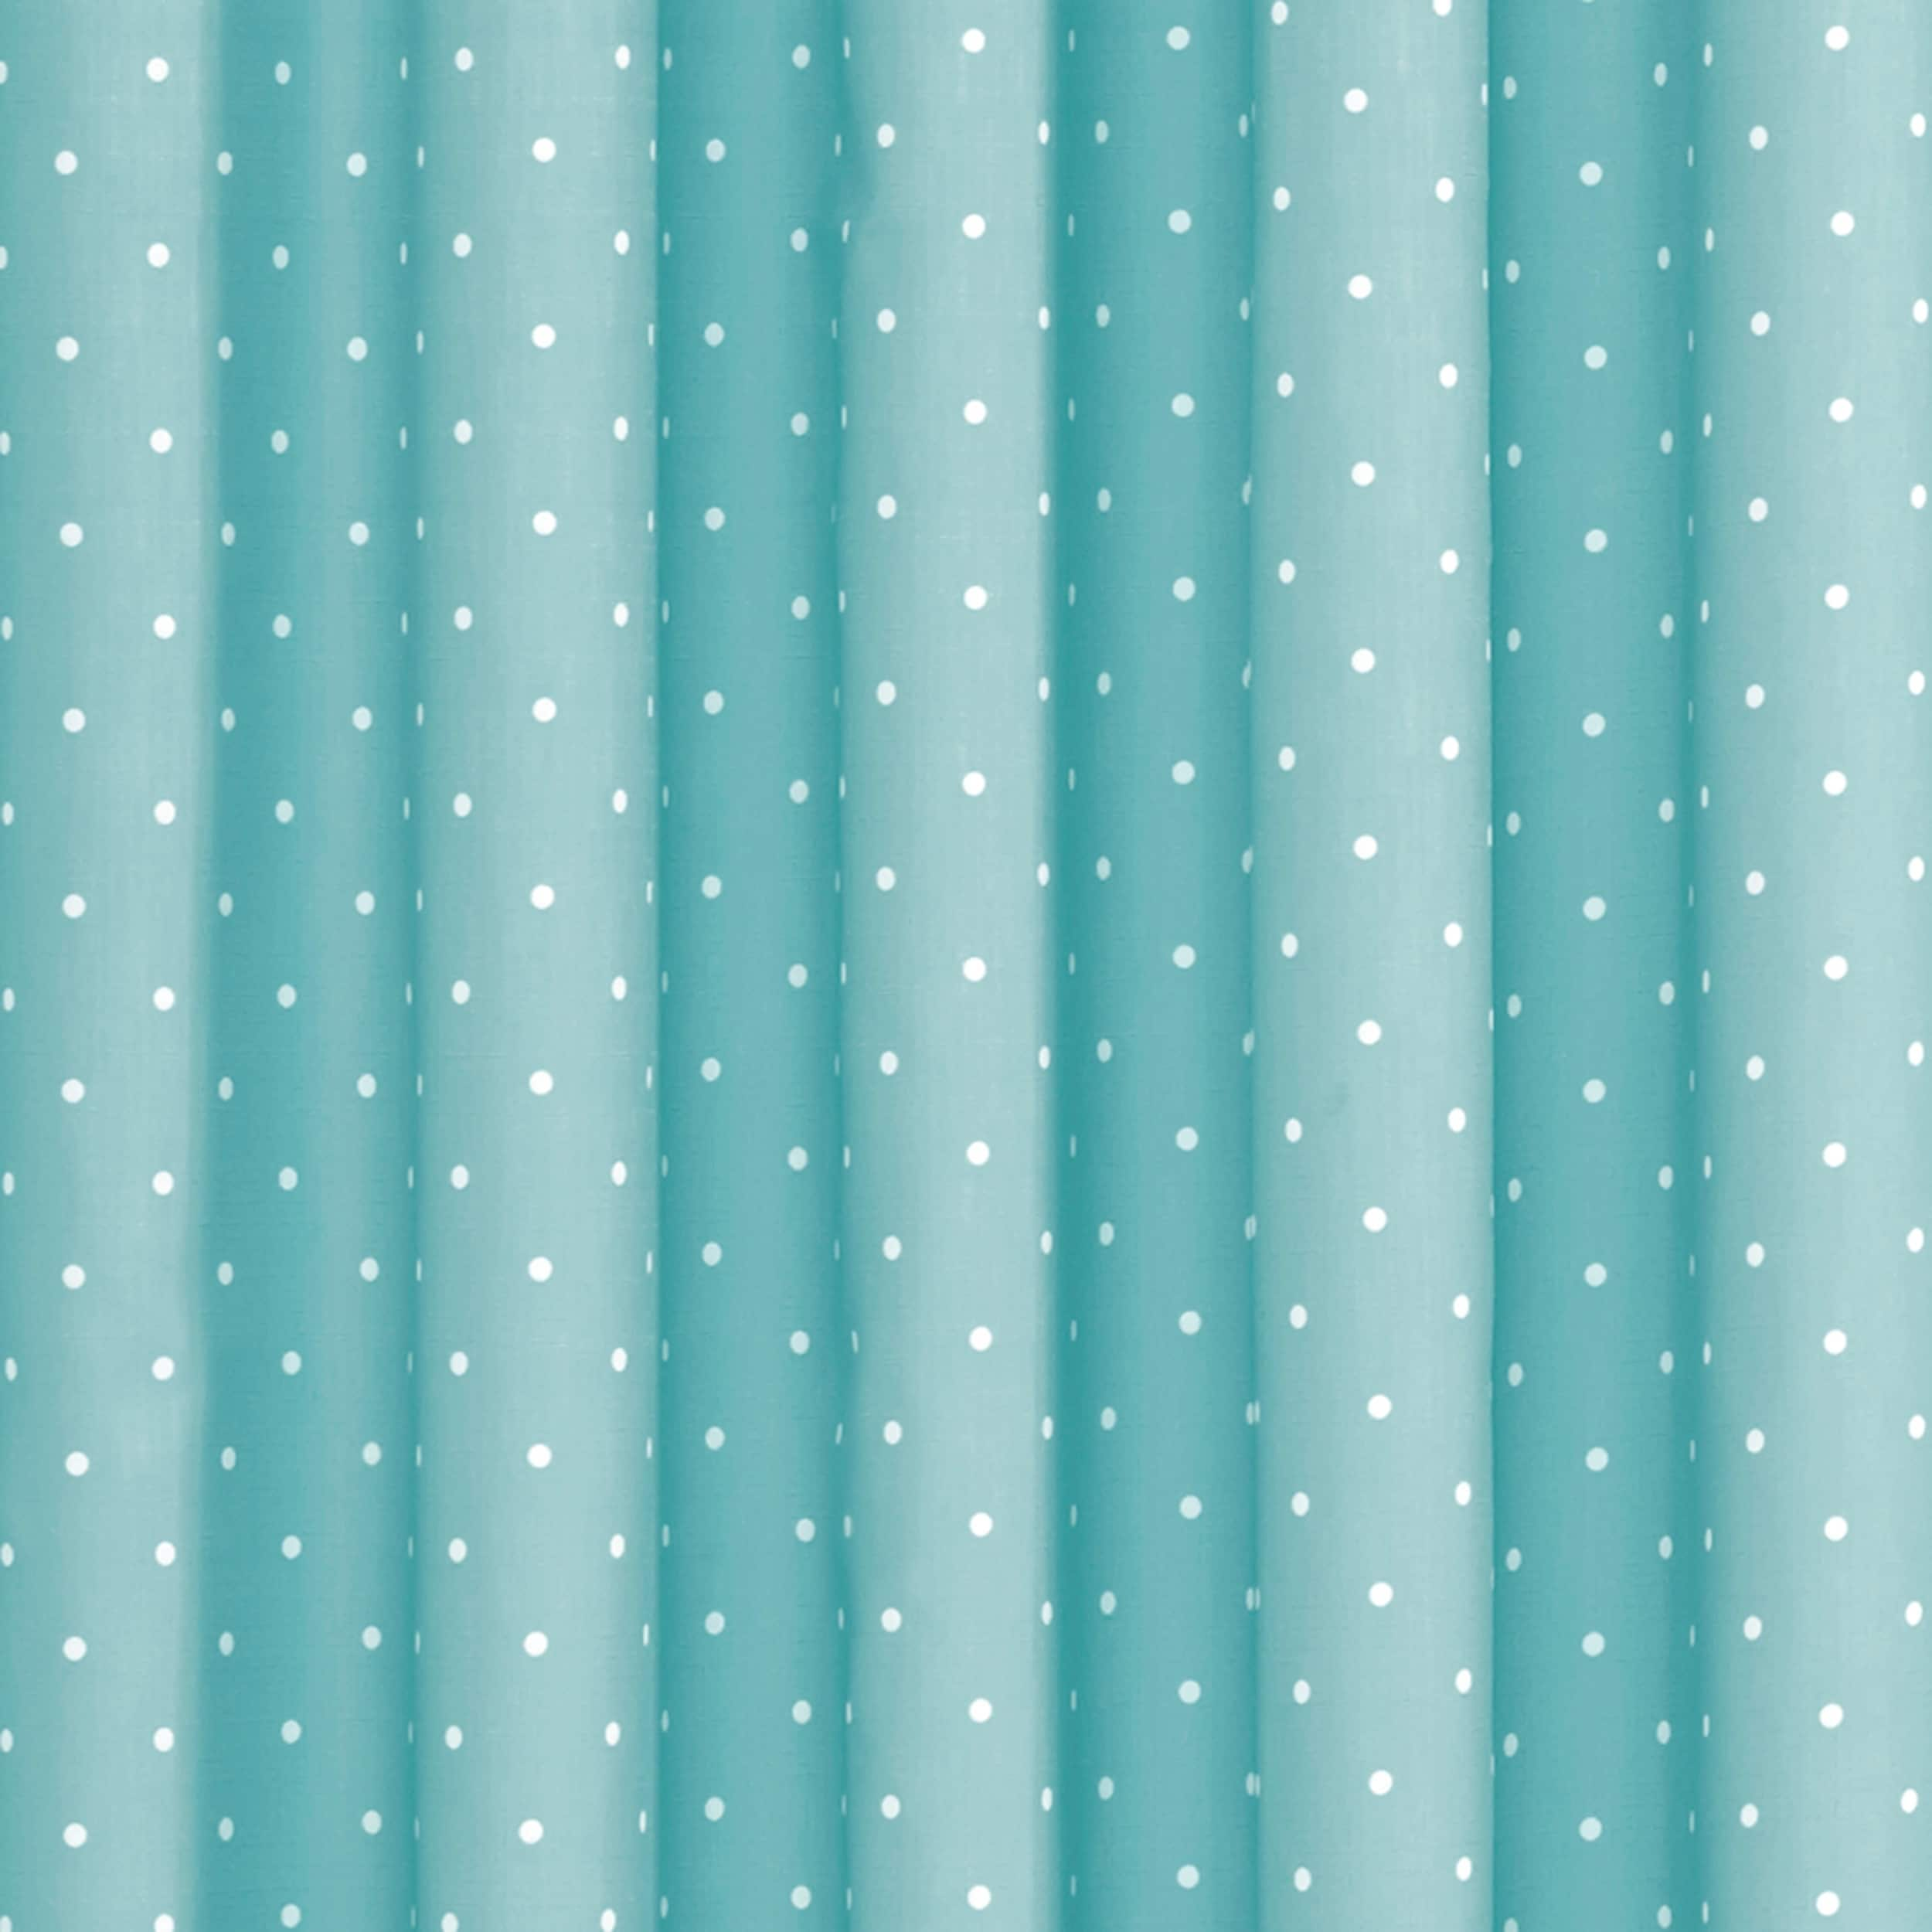 Kids Polka Dot Curtains Eclipse kids dots blackout curtain valance free shipping on orders eclipse kids dots blackout curtain valance free shipping on orders over 45 overstock 21198824 sisterspd